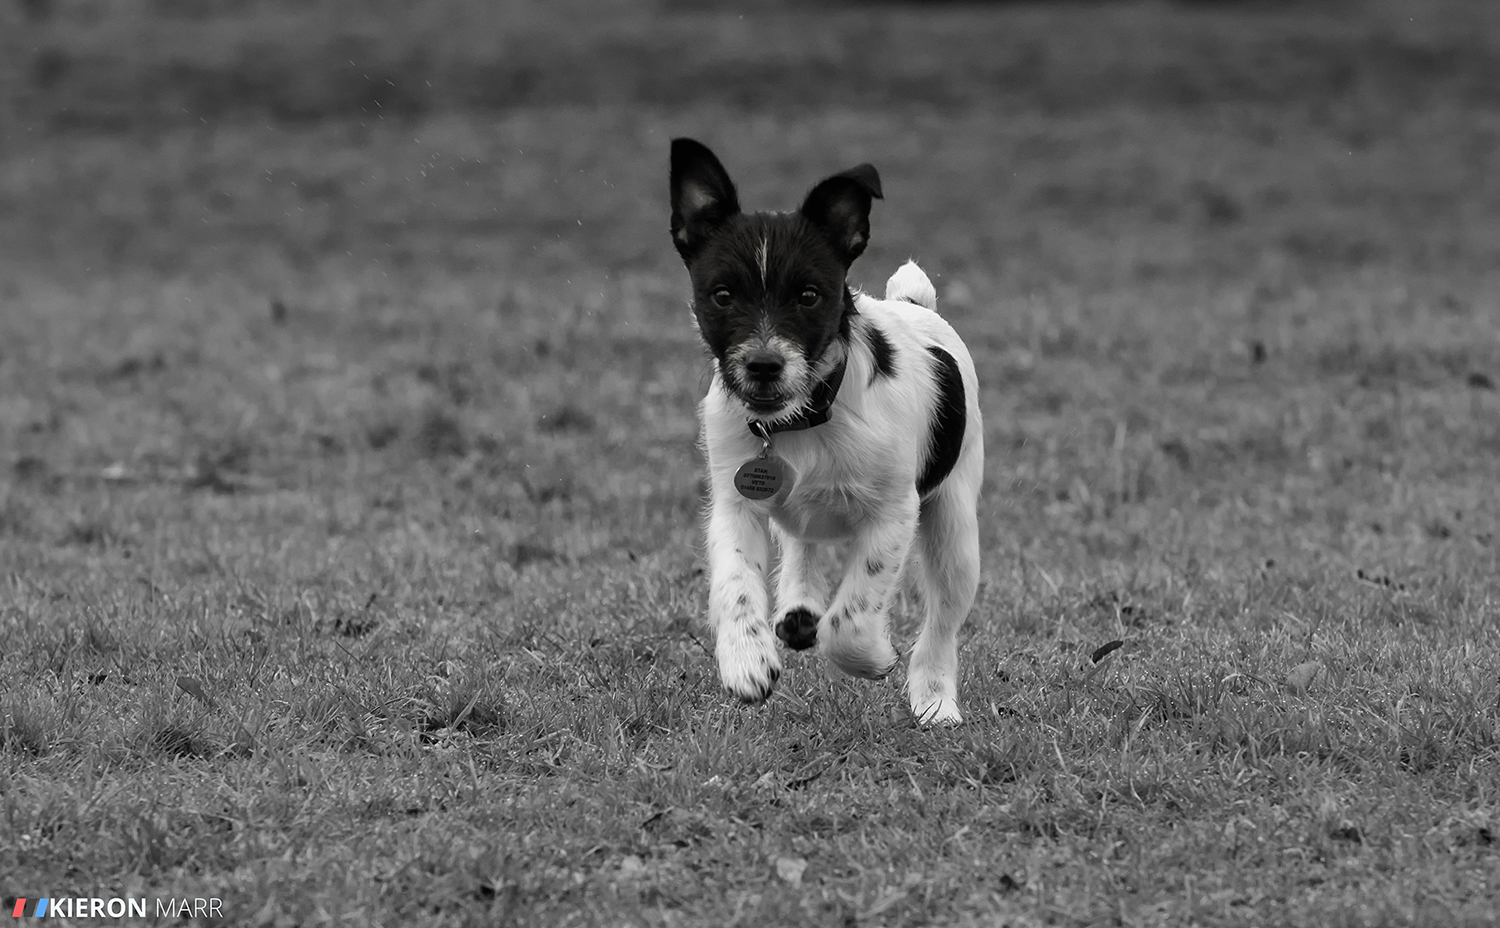 Stan the Jack Russell